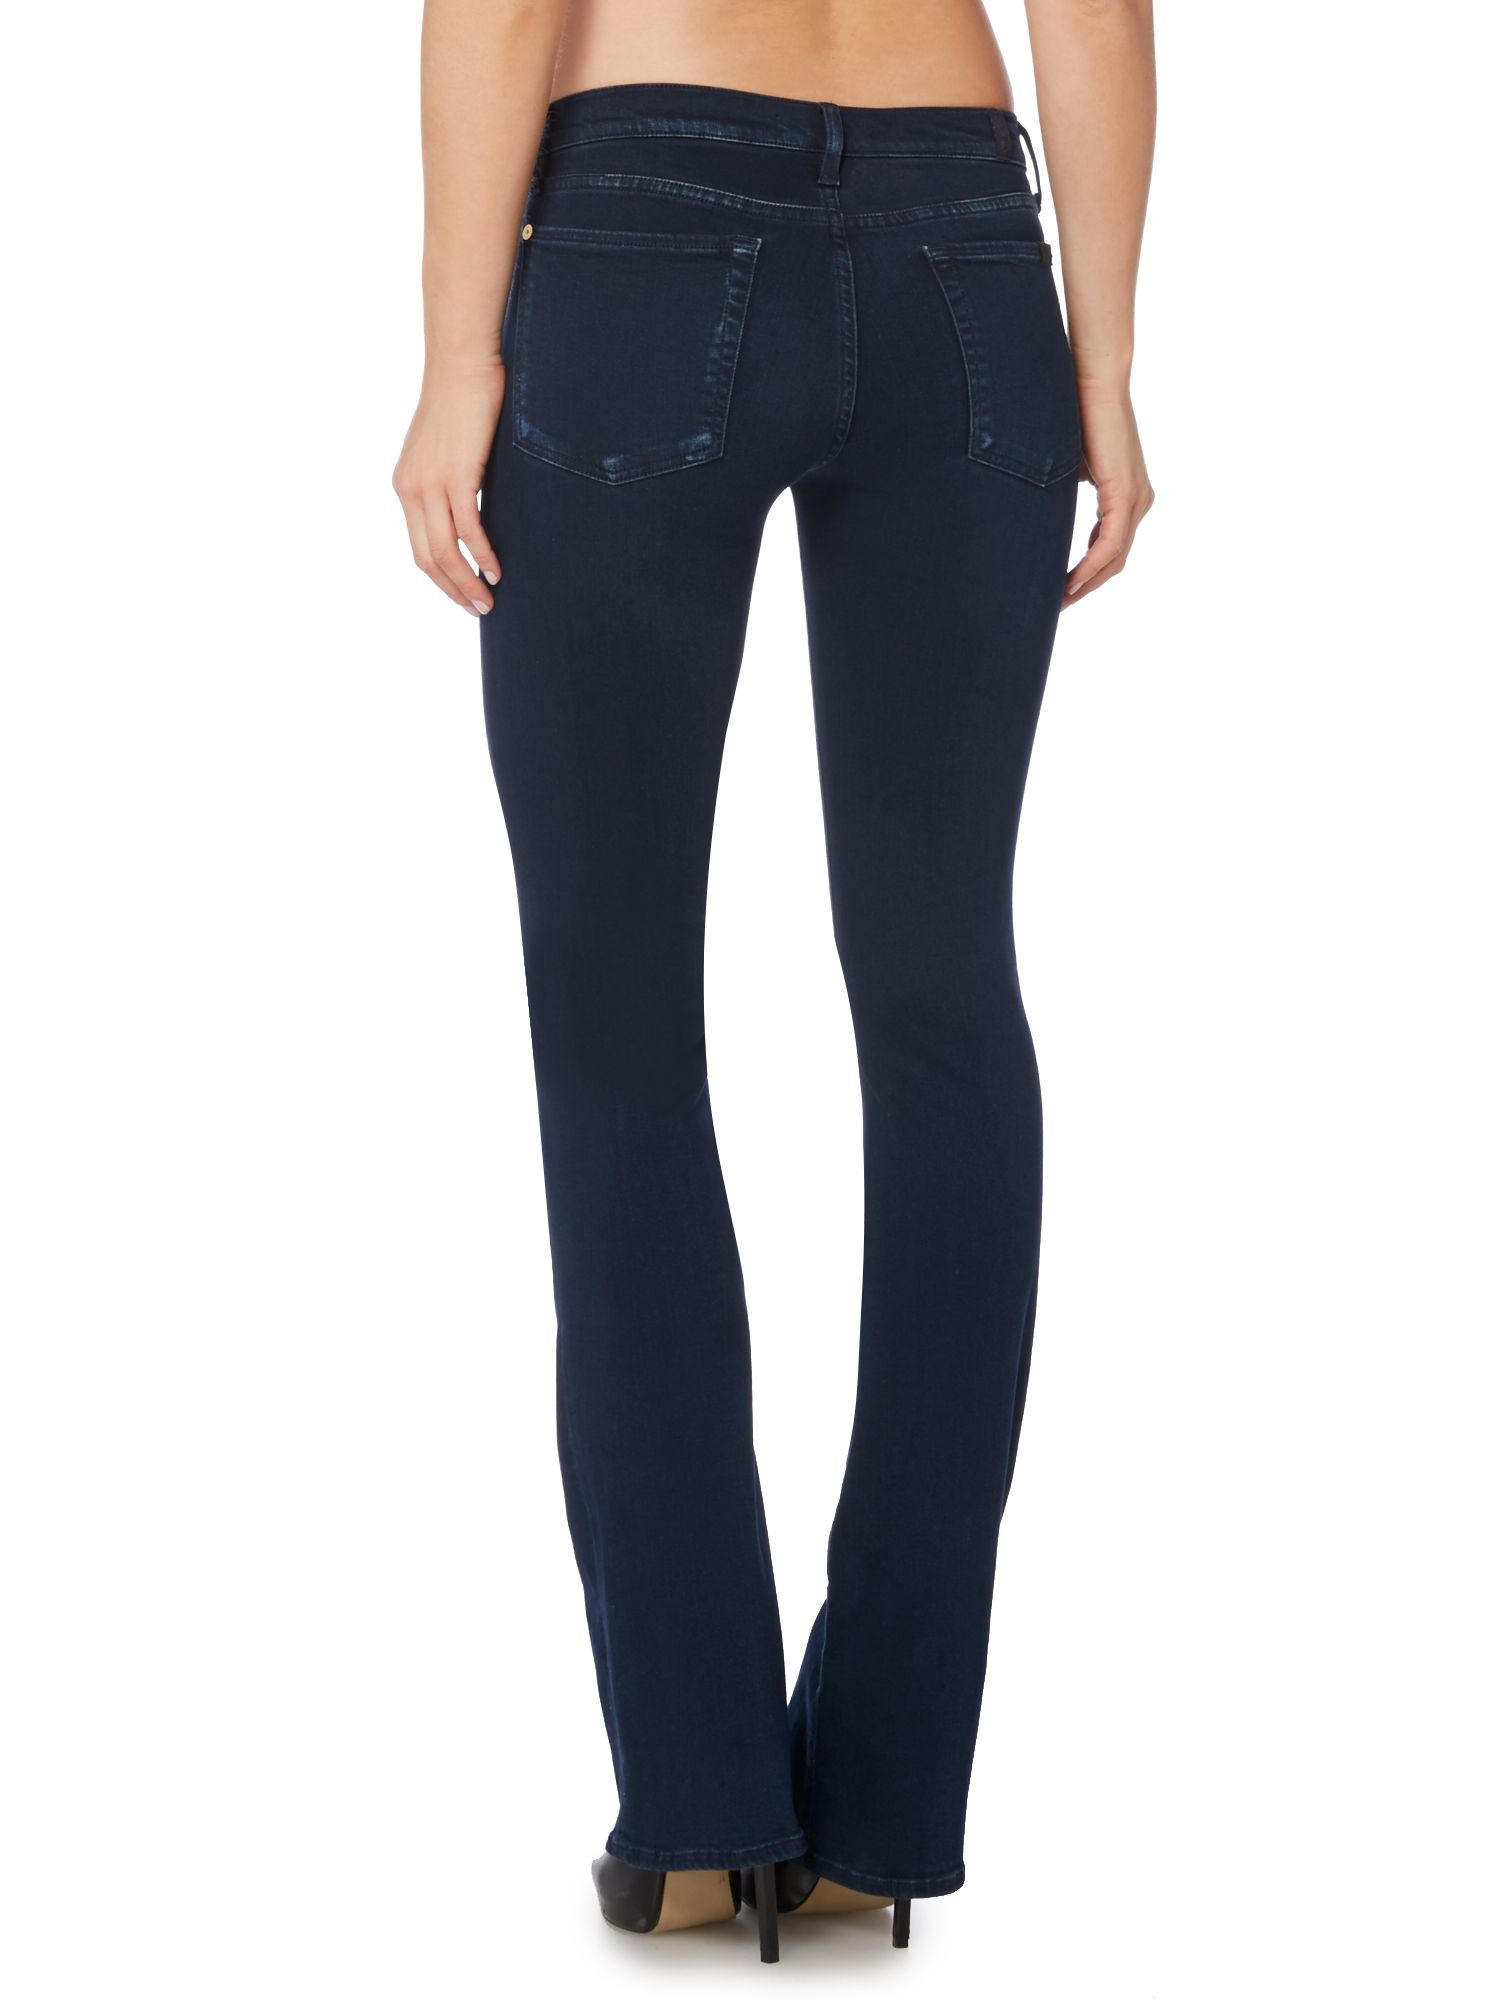 lyst 7 for all mankind slim illusion skinny bootcut jean in rich indigo in blue. Black Bedroom Furniture Sets. Home Design Ideas